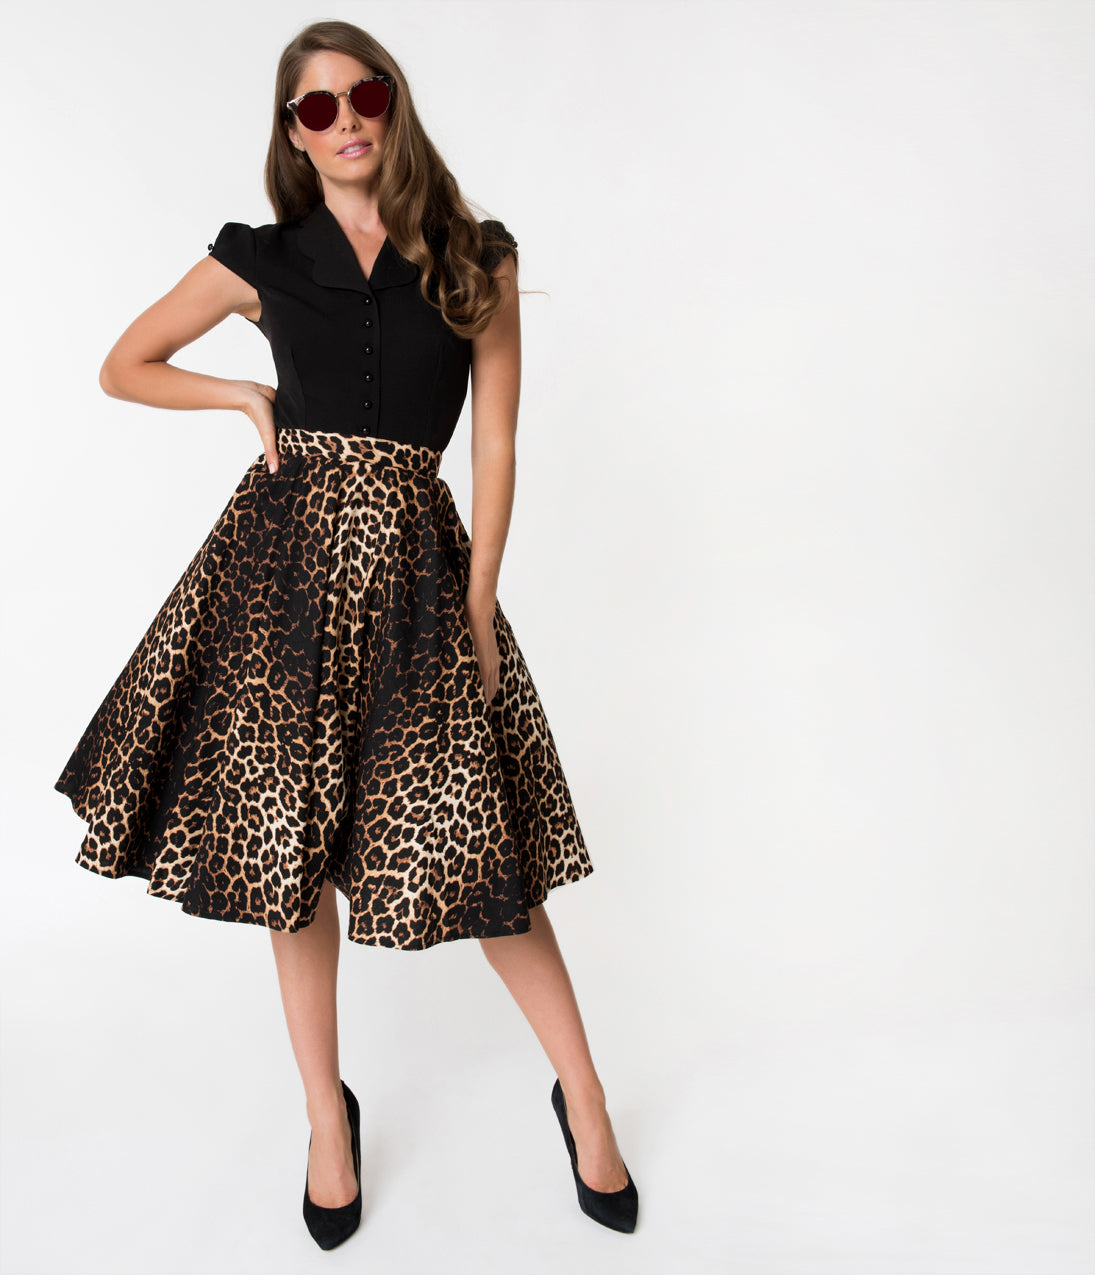 Rockabilly Dresses | Rockabilly Clothing | Viva Las Vegas Hell Bunny 1950S Style Leopard Print Cotton Panthera Swing Skirt $48.00 AT vintagedancer.com